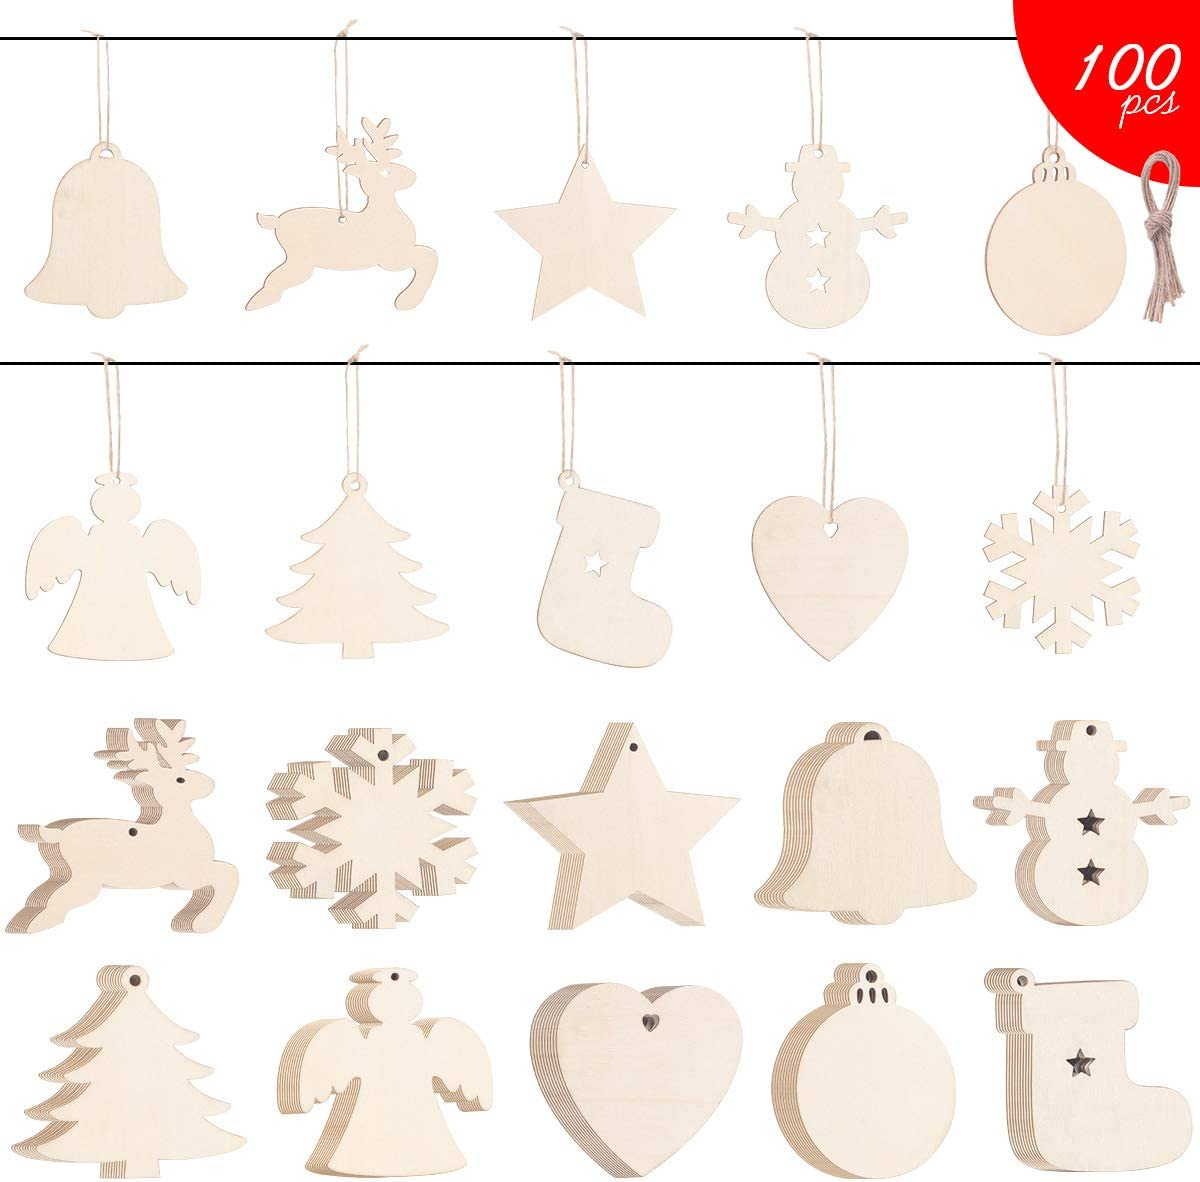 Sanglory DIY Wooden Ornaments, 100 Pieces Unfinished Round Natural Wood Slices, Wooden Circles with Hole for Christmas Holiday Decoration Hanging and Kids Craft Centerpieces